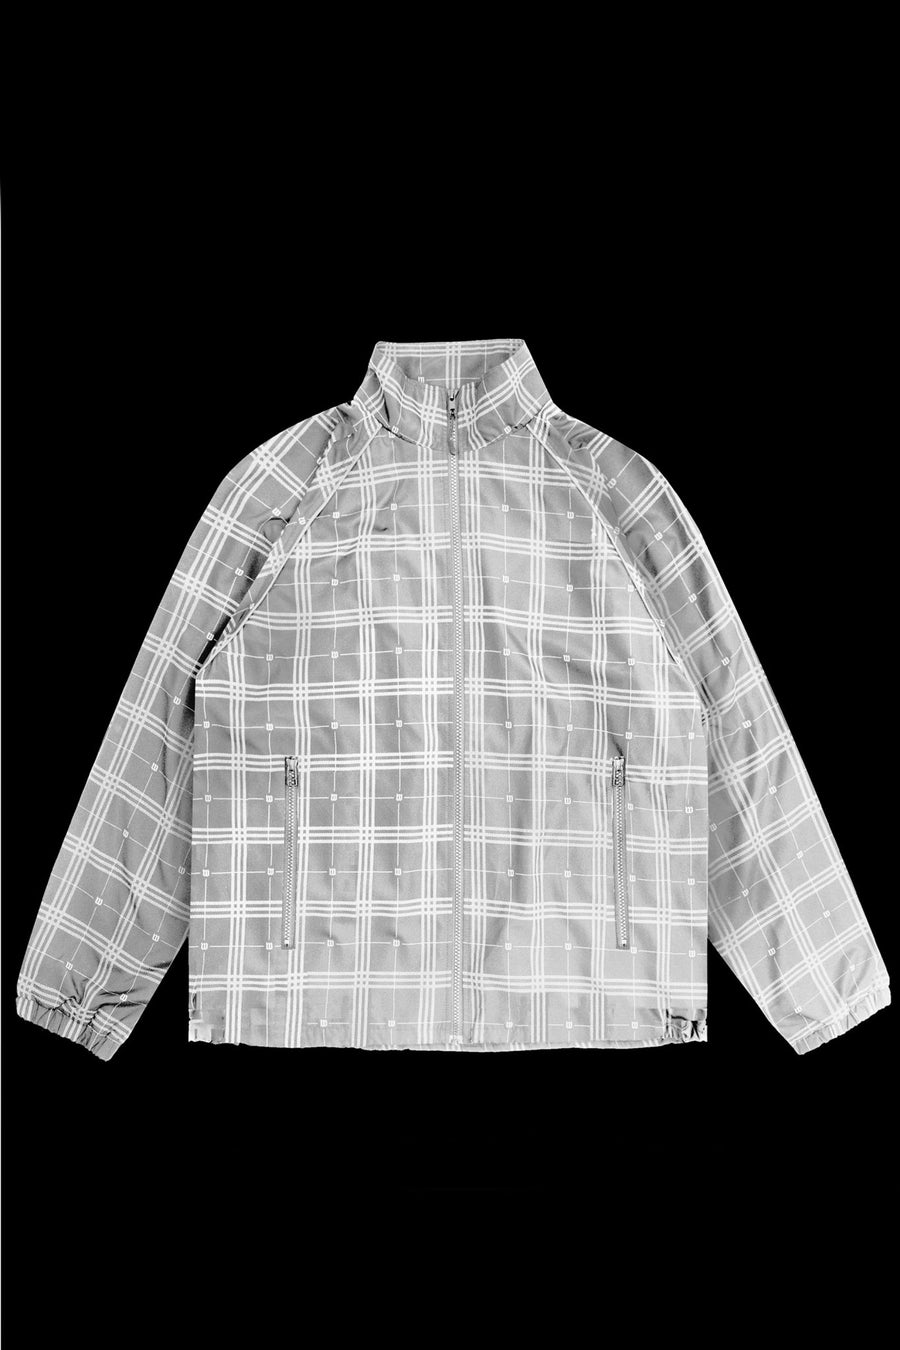 Veste Ghost Tartan Réflectif Blanc - WASTED PARIS